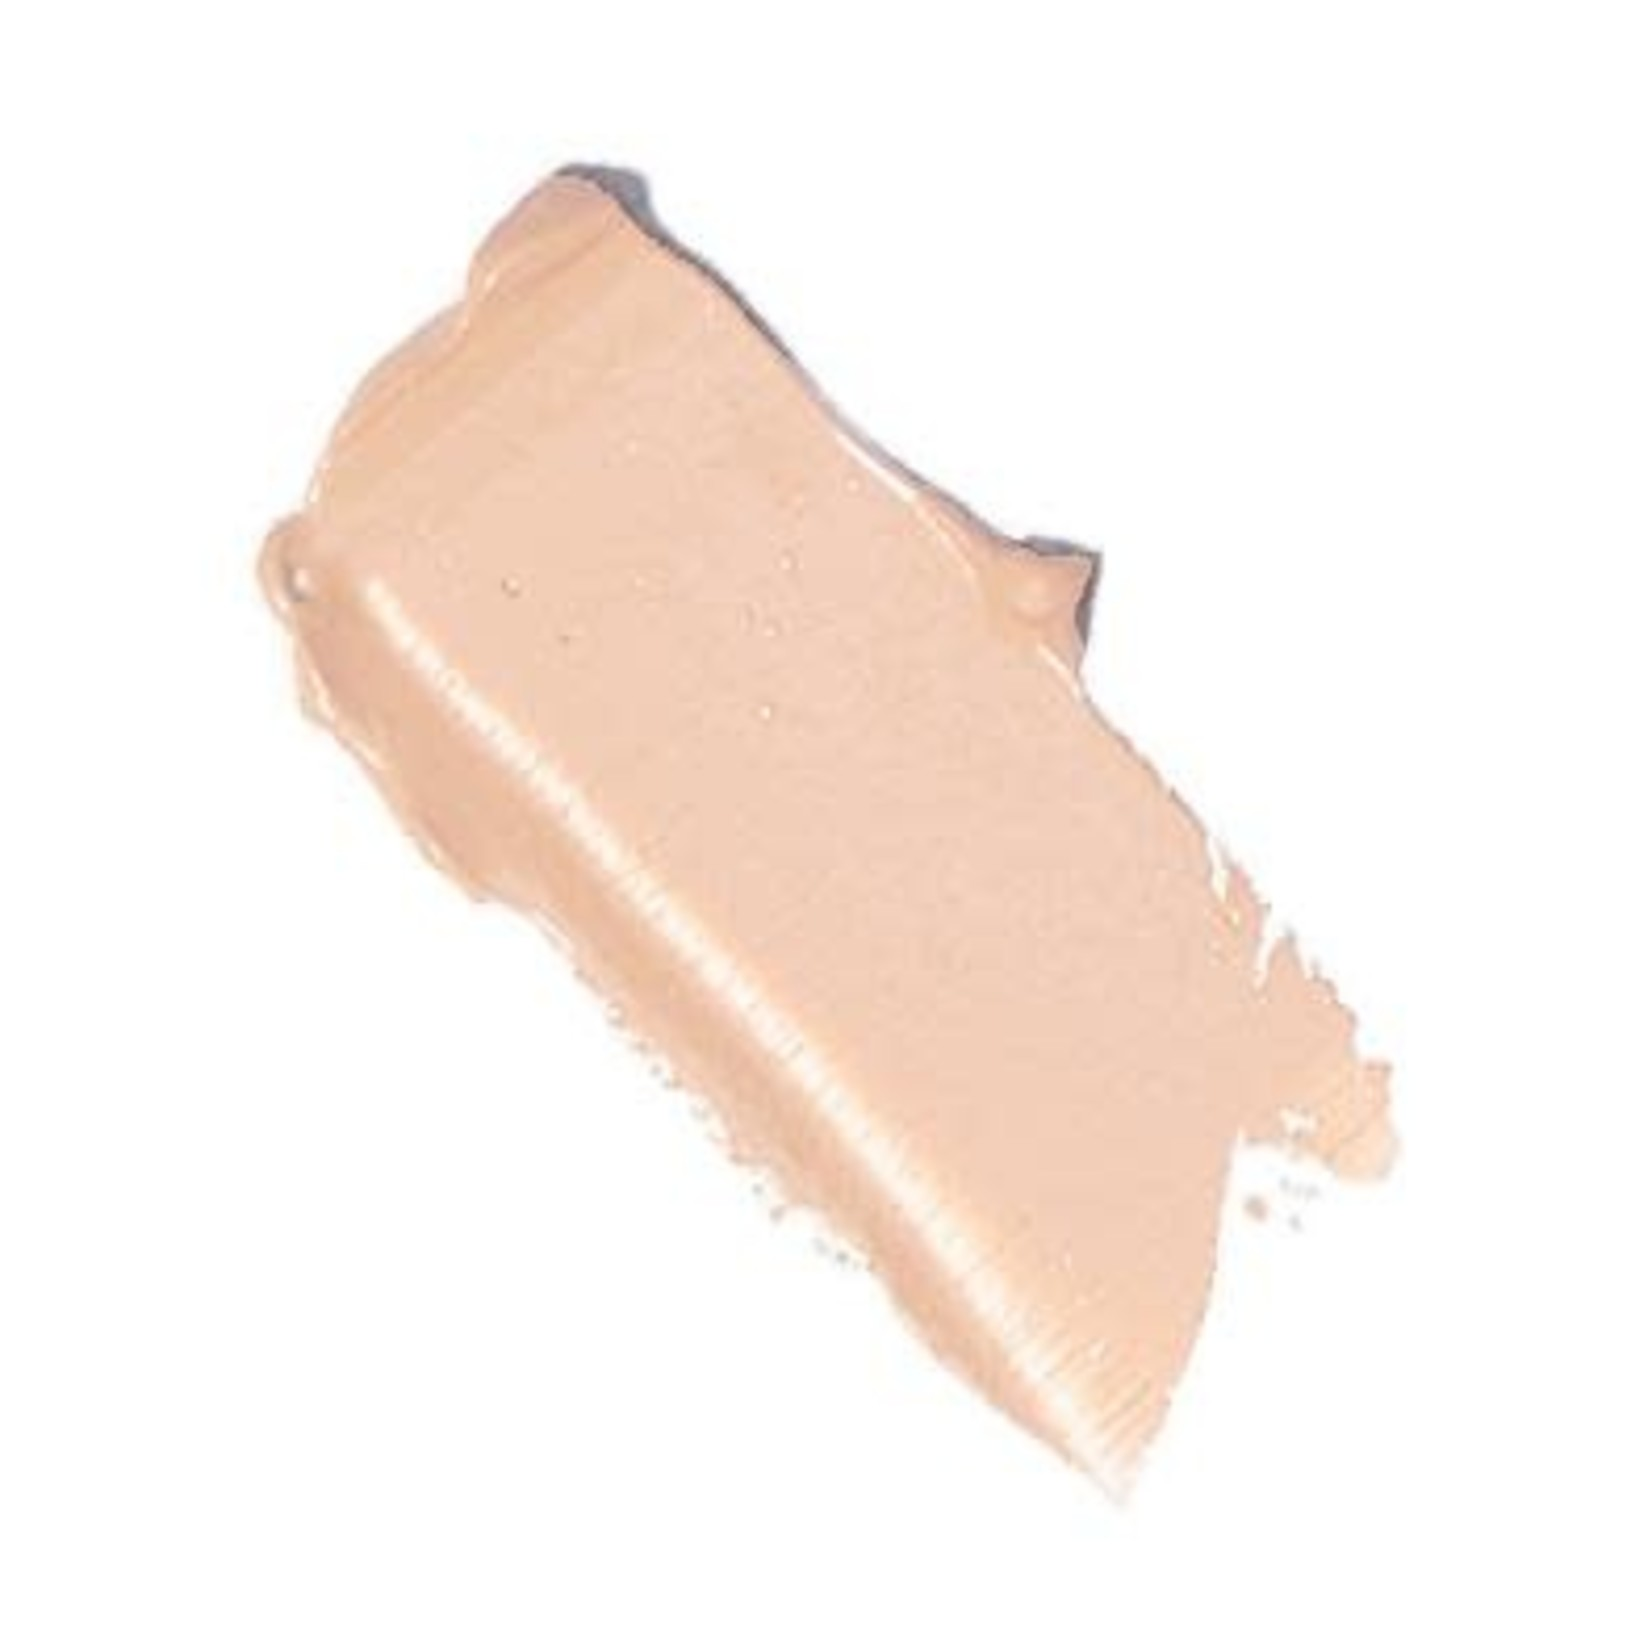 ELATE COSMETICS UPLIFT FOUNDATION UC2